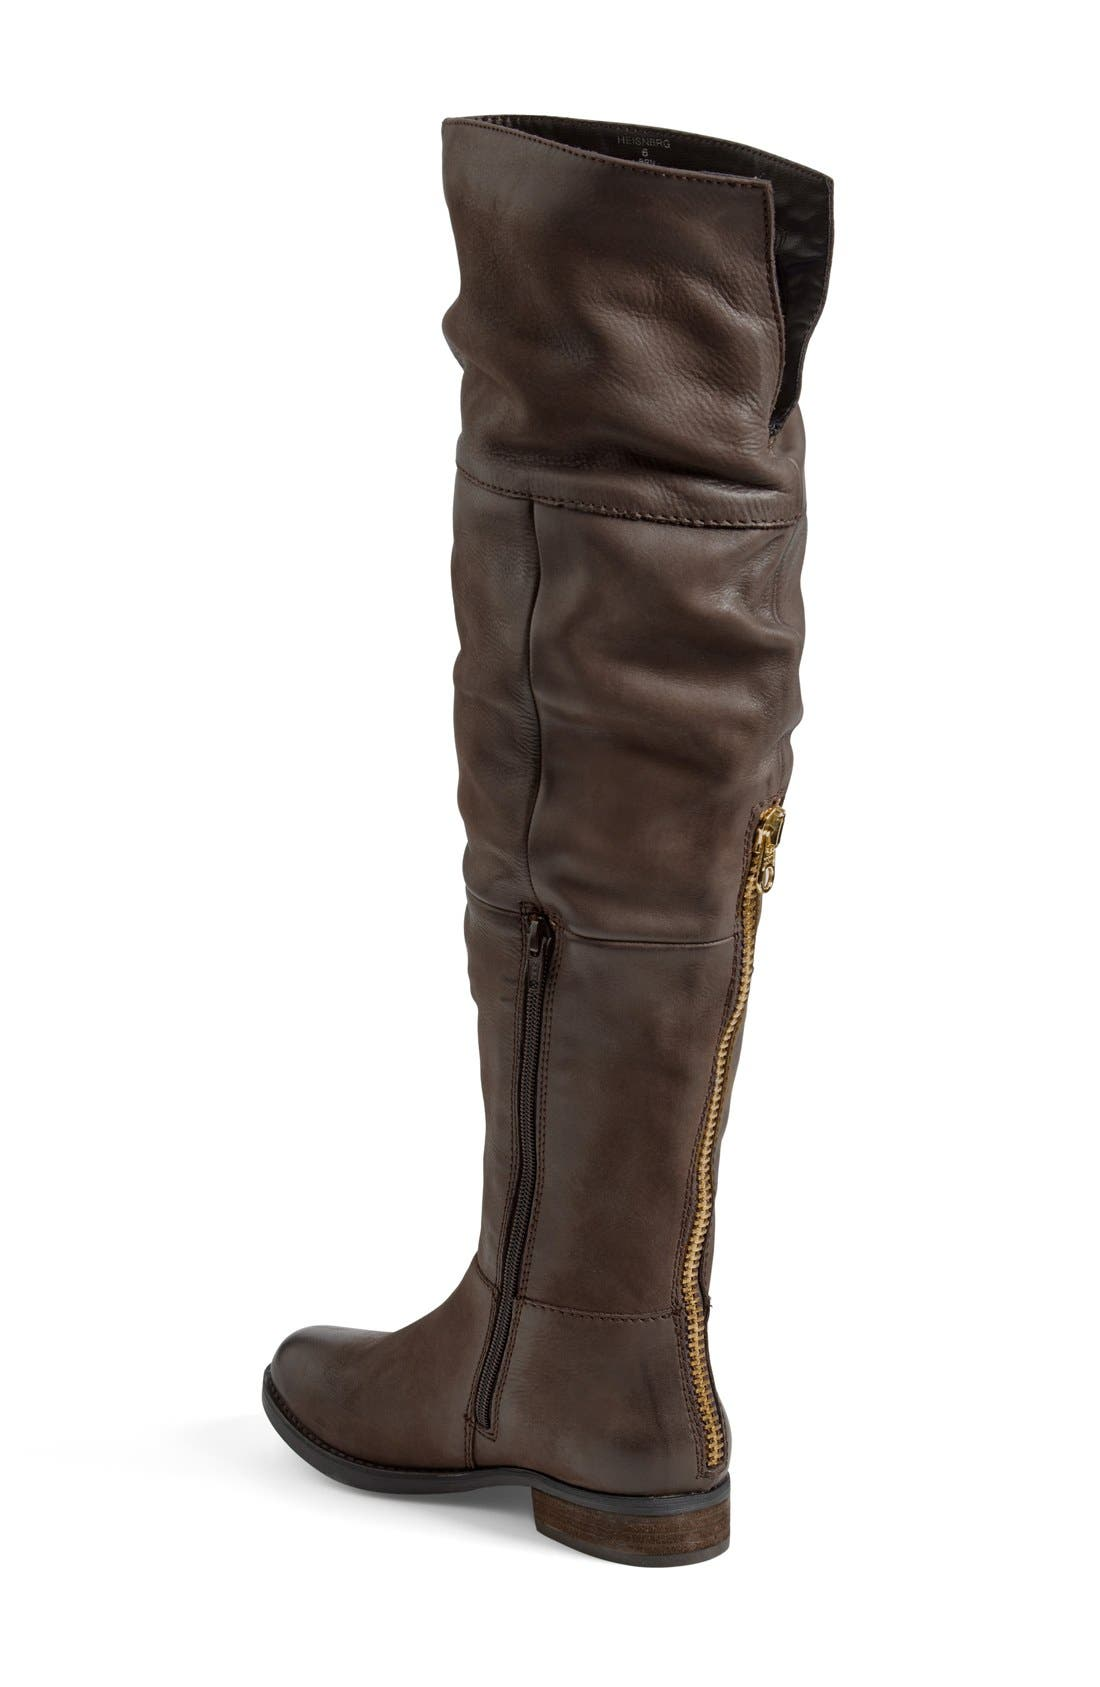 'Heisnbrg' Leather Over the Knee Boot,                             Alternate thumbnail 3, color,                             Brown Leather